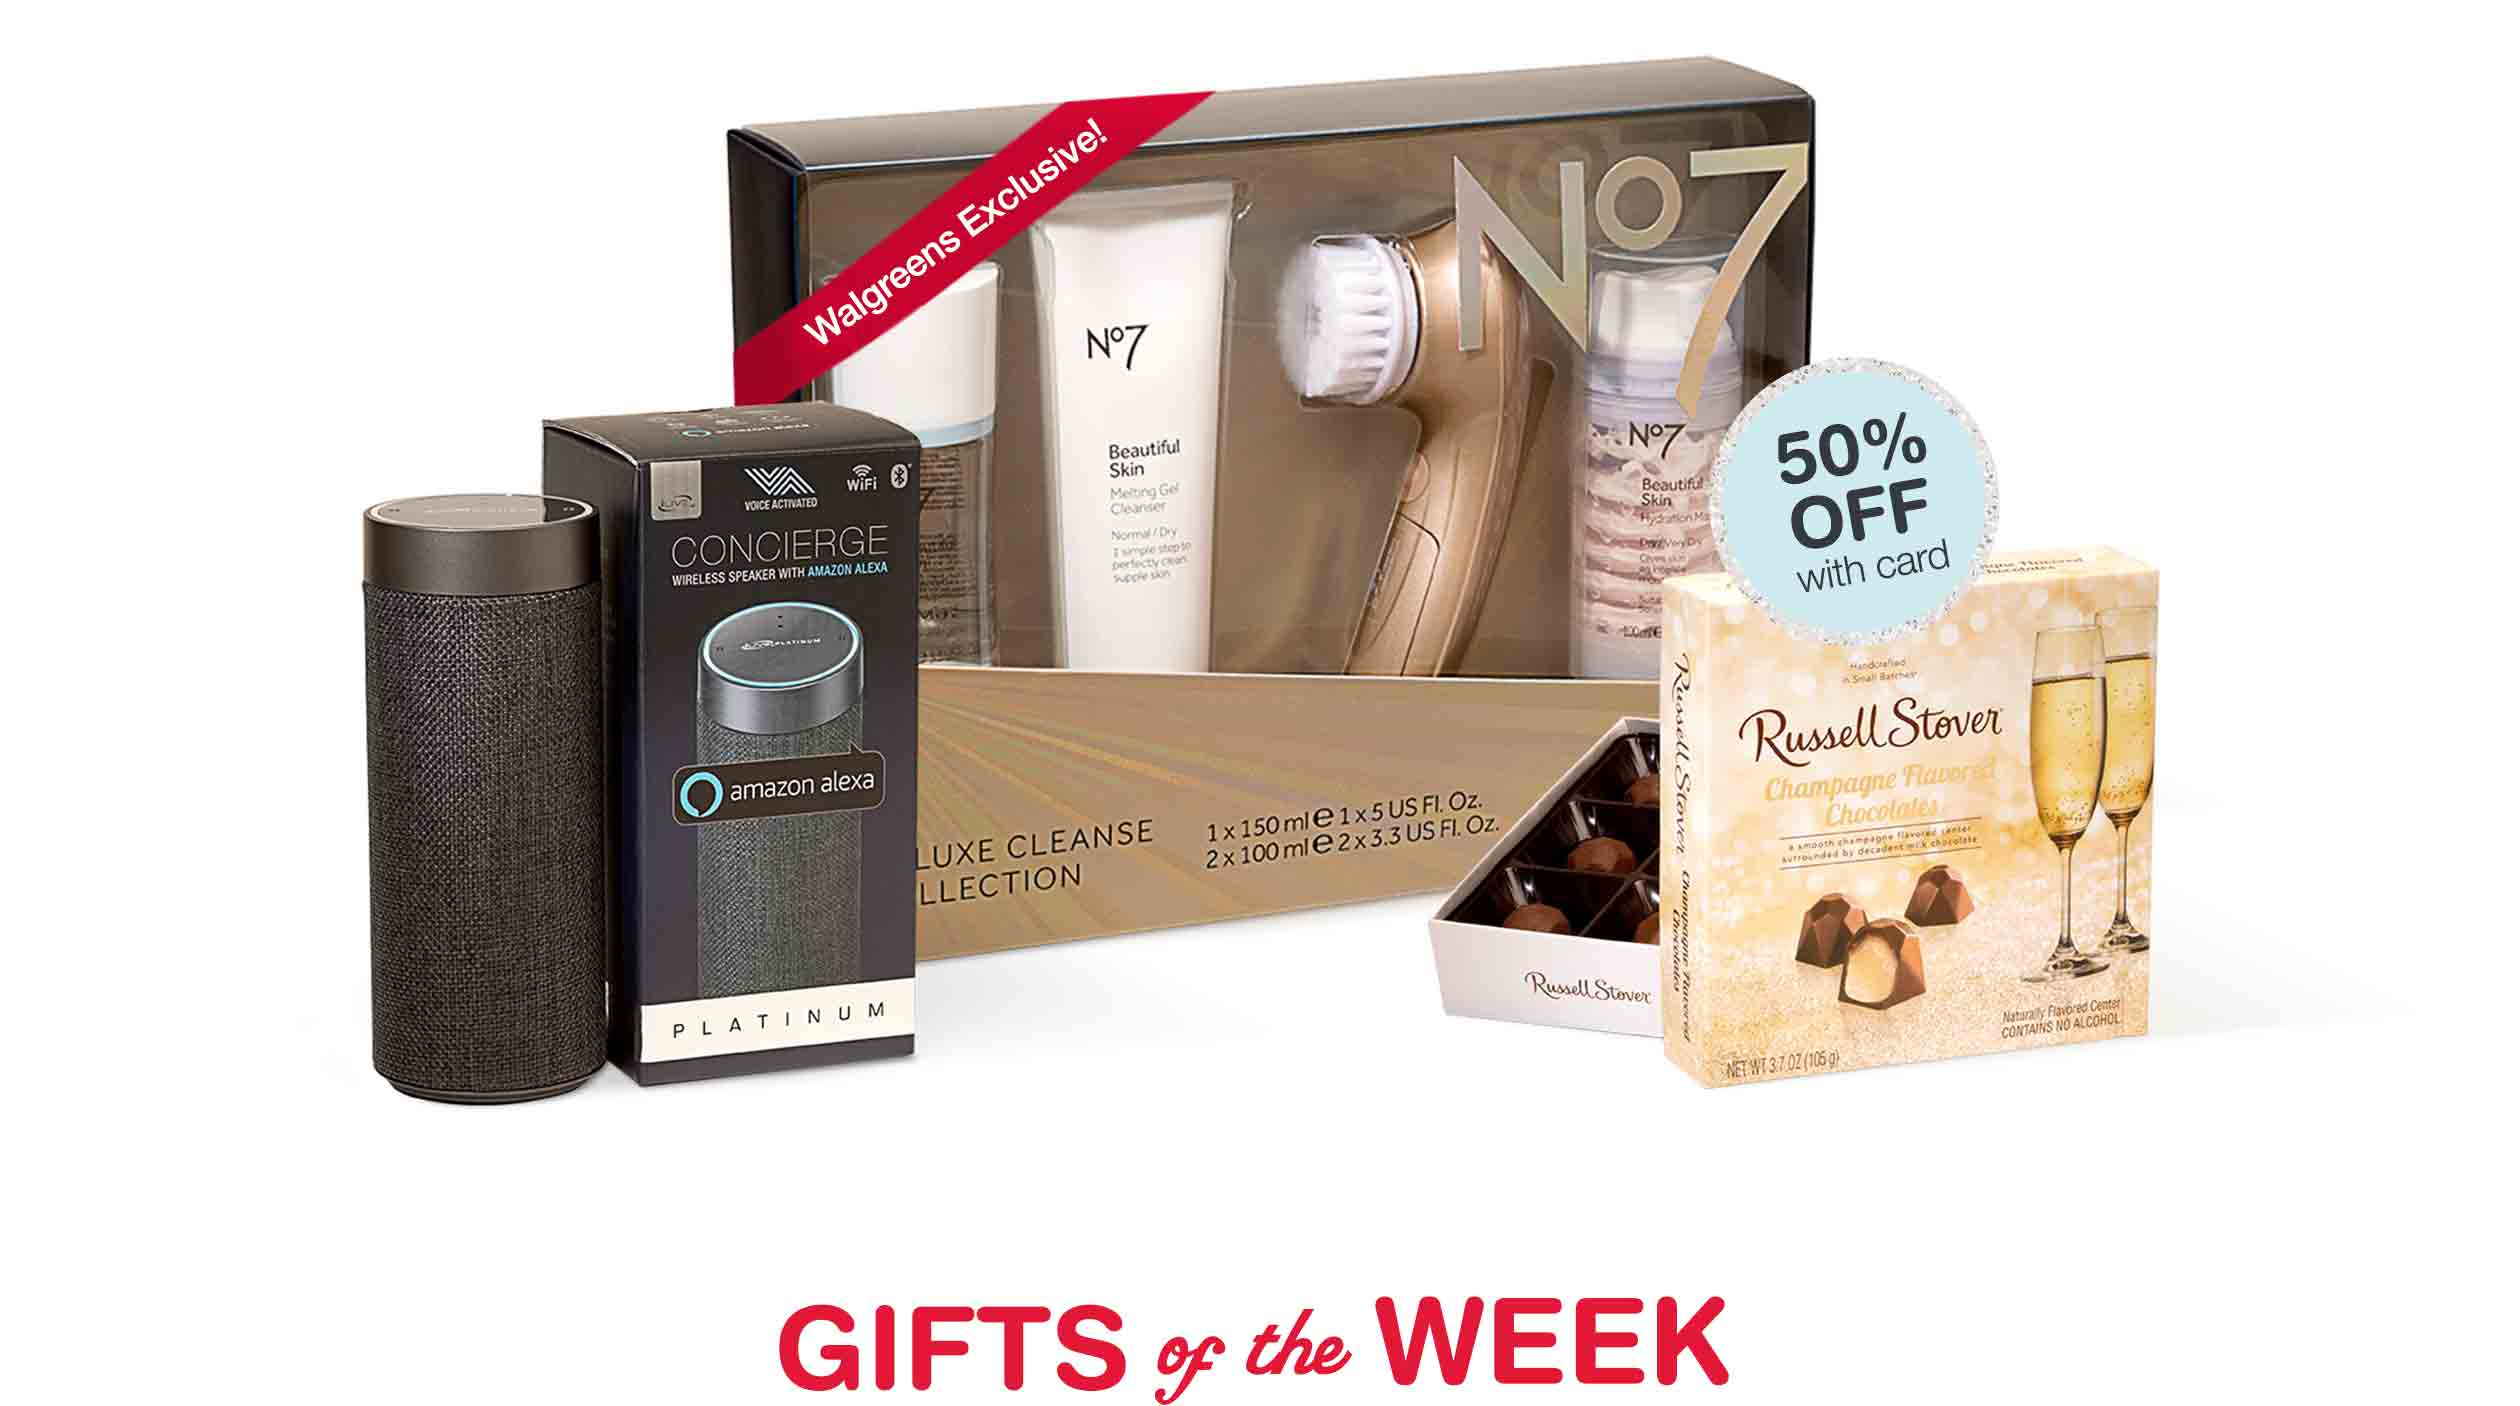 Gifts of the Week. 50% OFF with card.